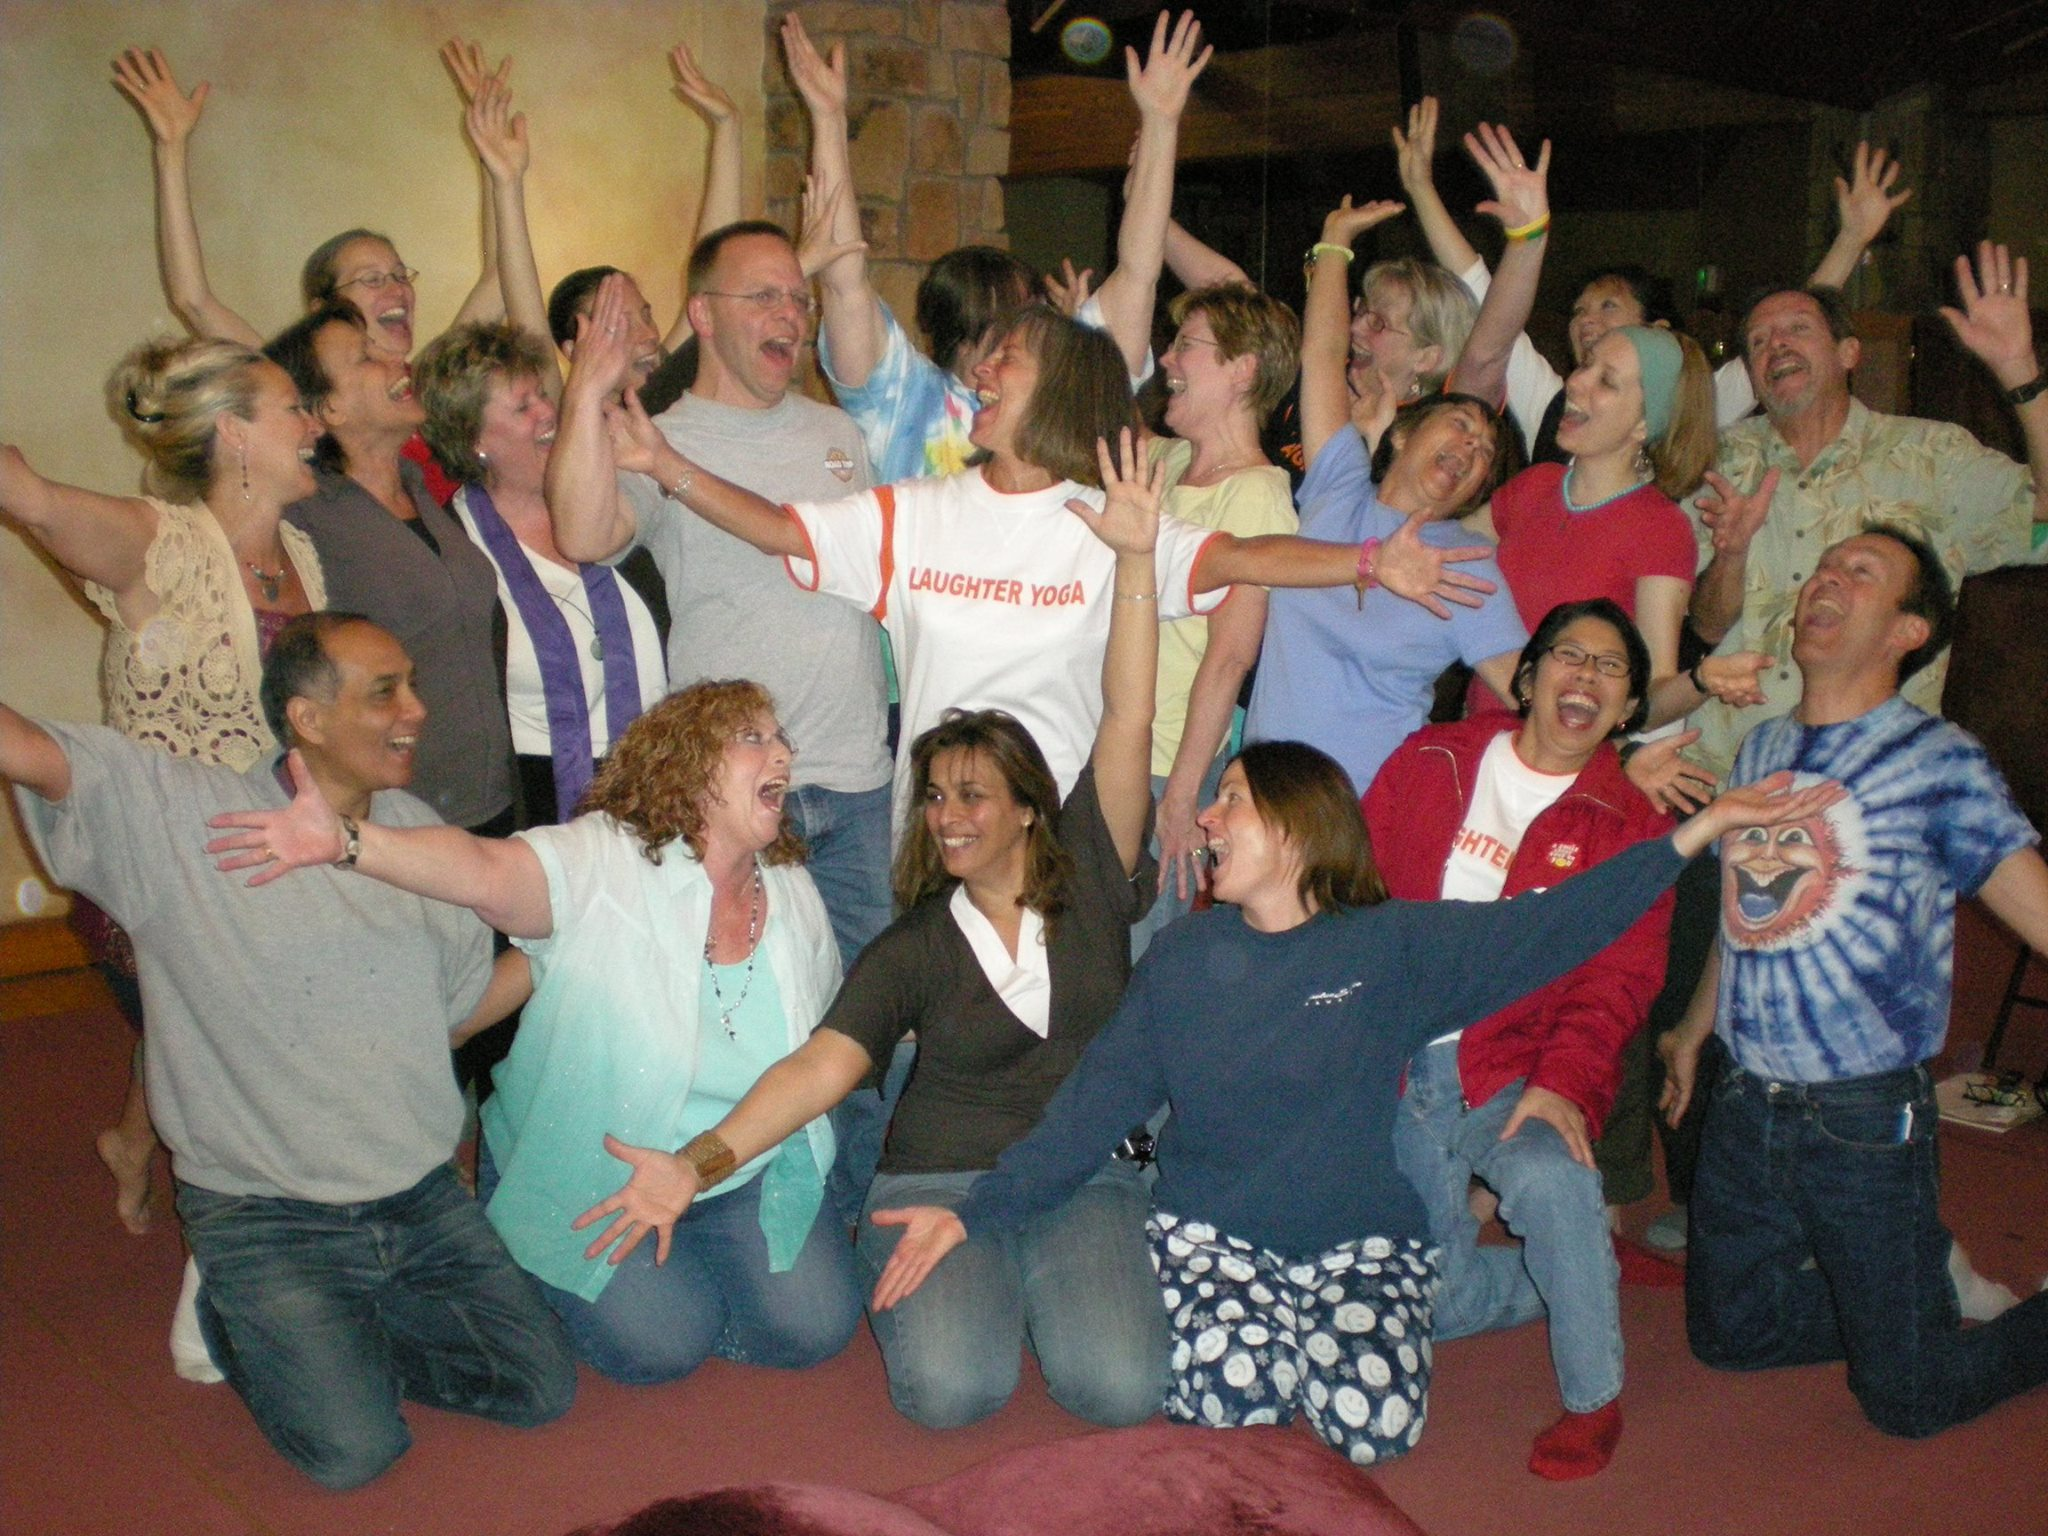 My Certified Laughter Yoga Teacher Training - April 2008, Harbin Hot Springs, CA